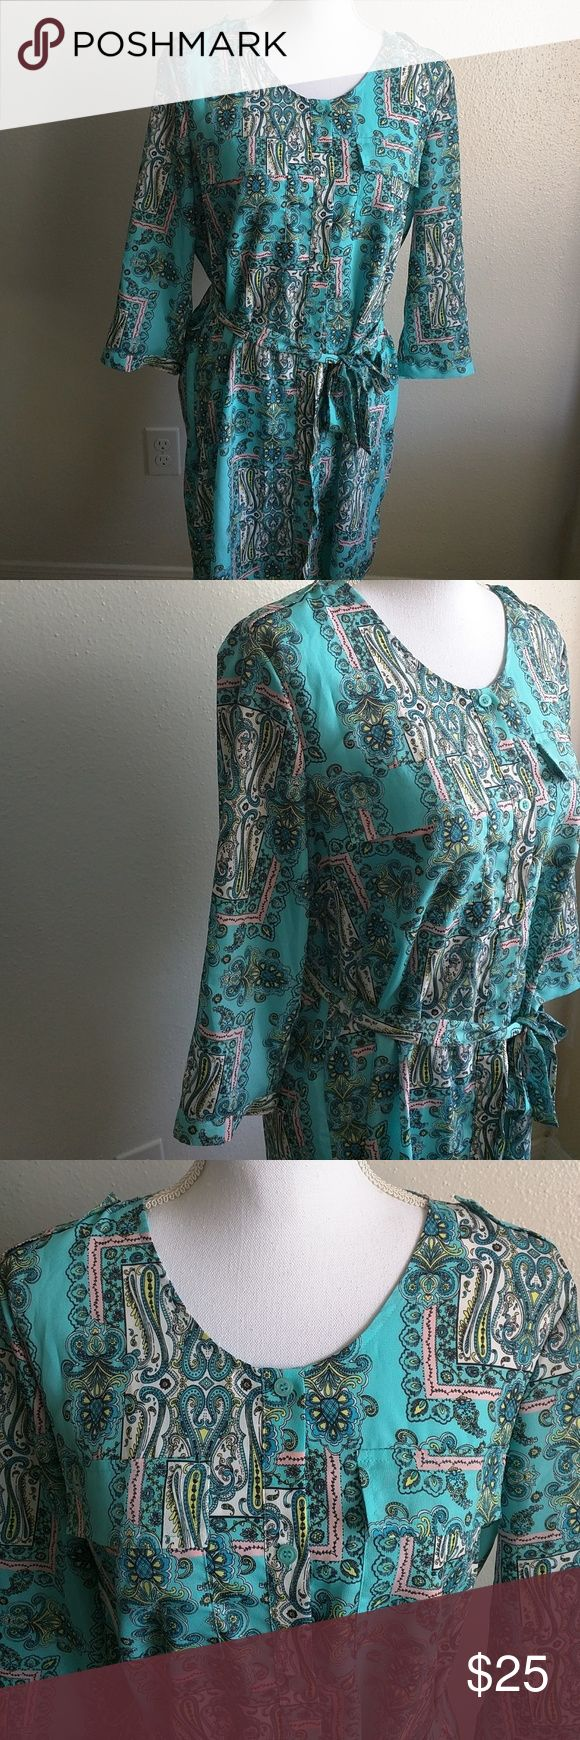 Moda internacional paisley dress 💙like new Moda internacional come from Victoria secret. Excellent condition no damage at all used only one time two pockets in the front bottoms in the front, 34 inches long. if you have any questions please let me know Moda International Dresses Midi